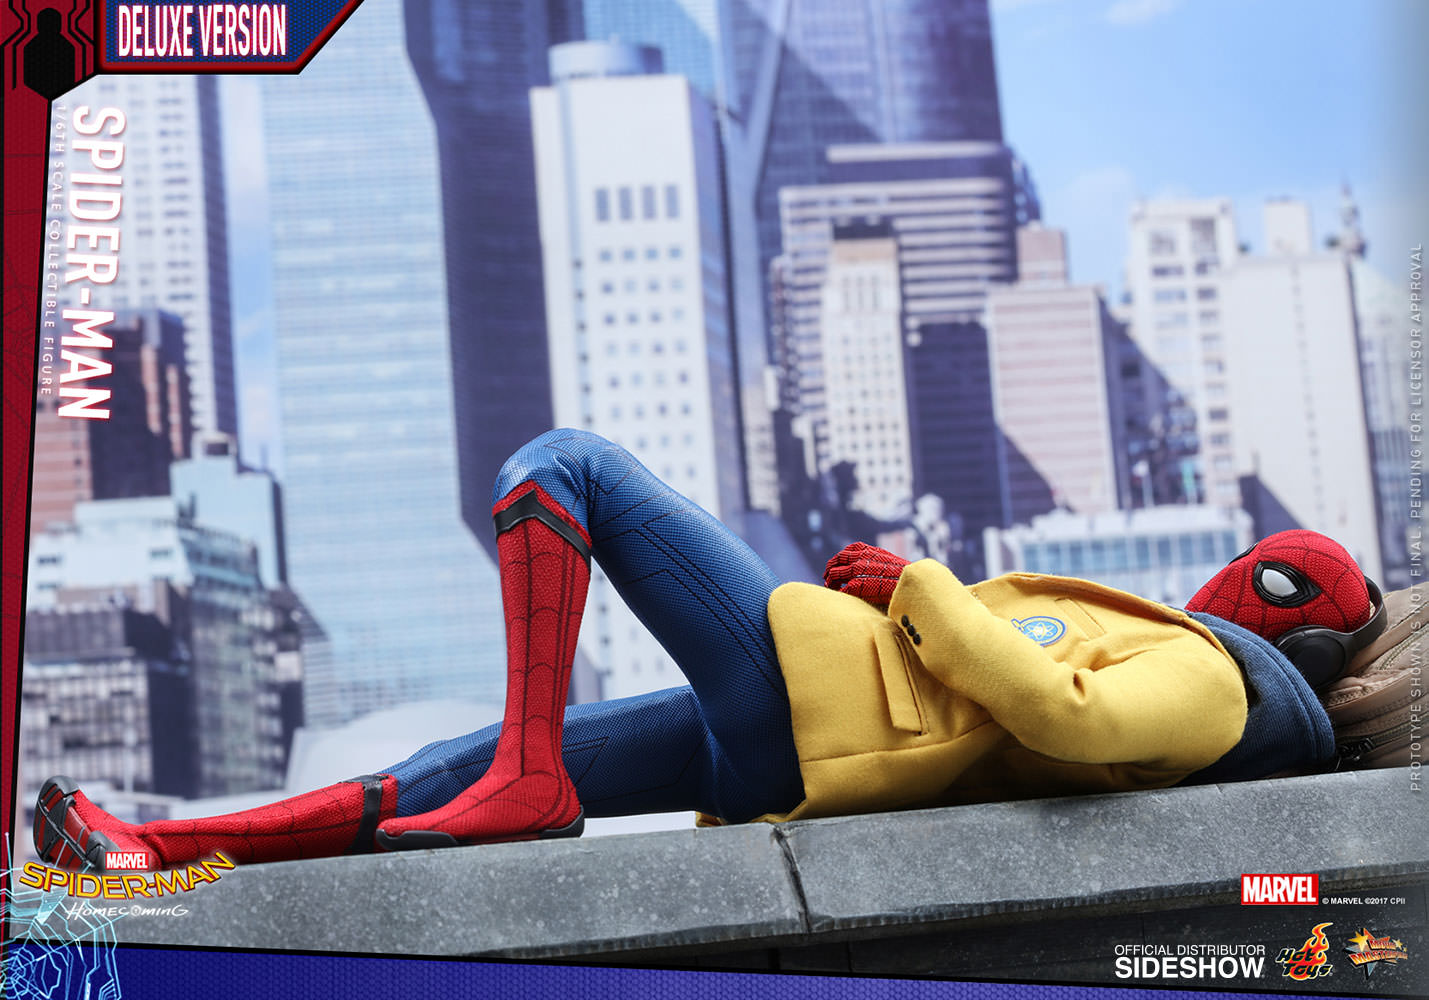 marvel spider man deluxe version sixth scale figure by t